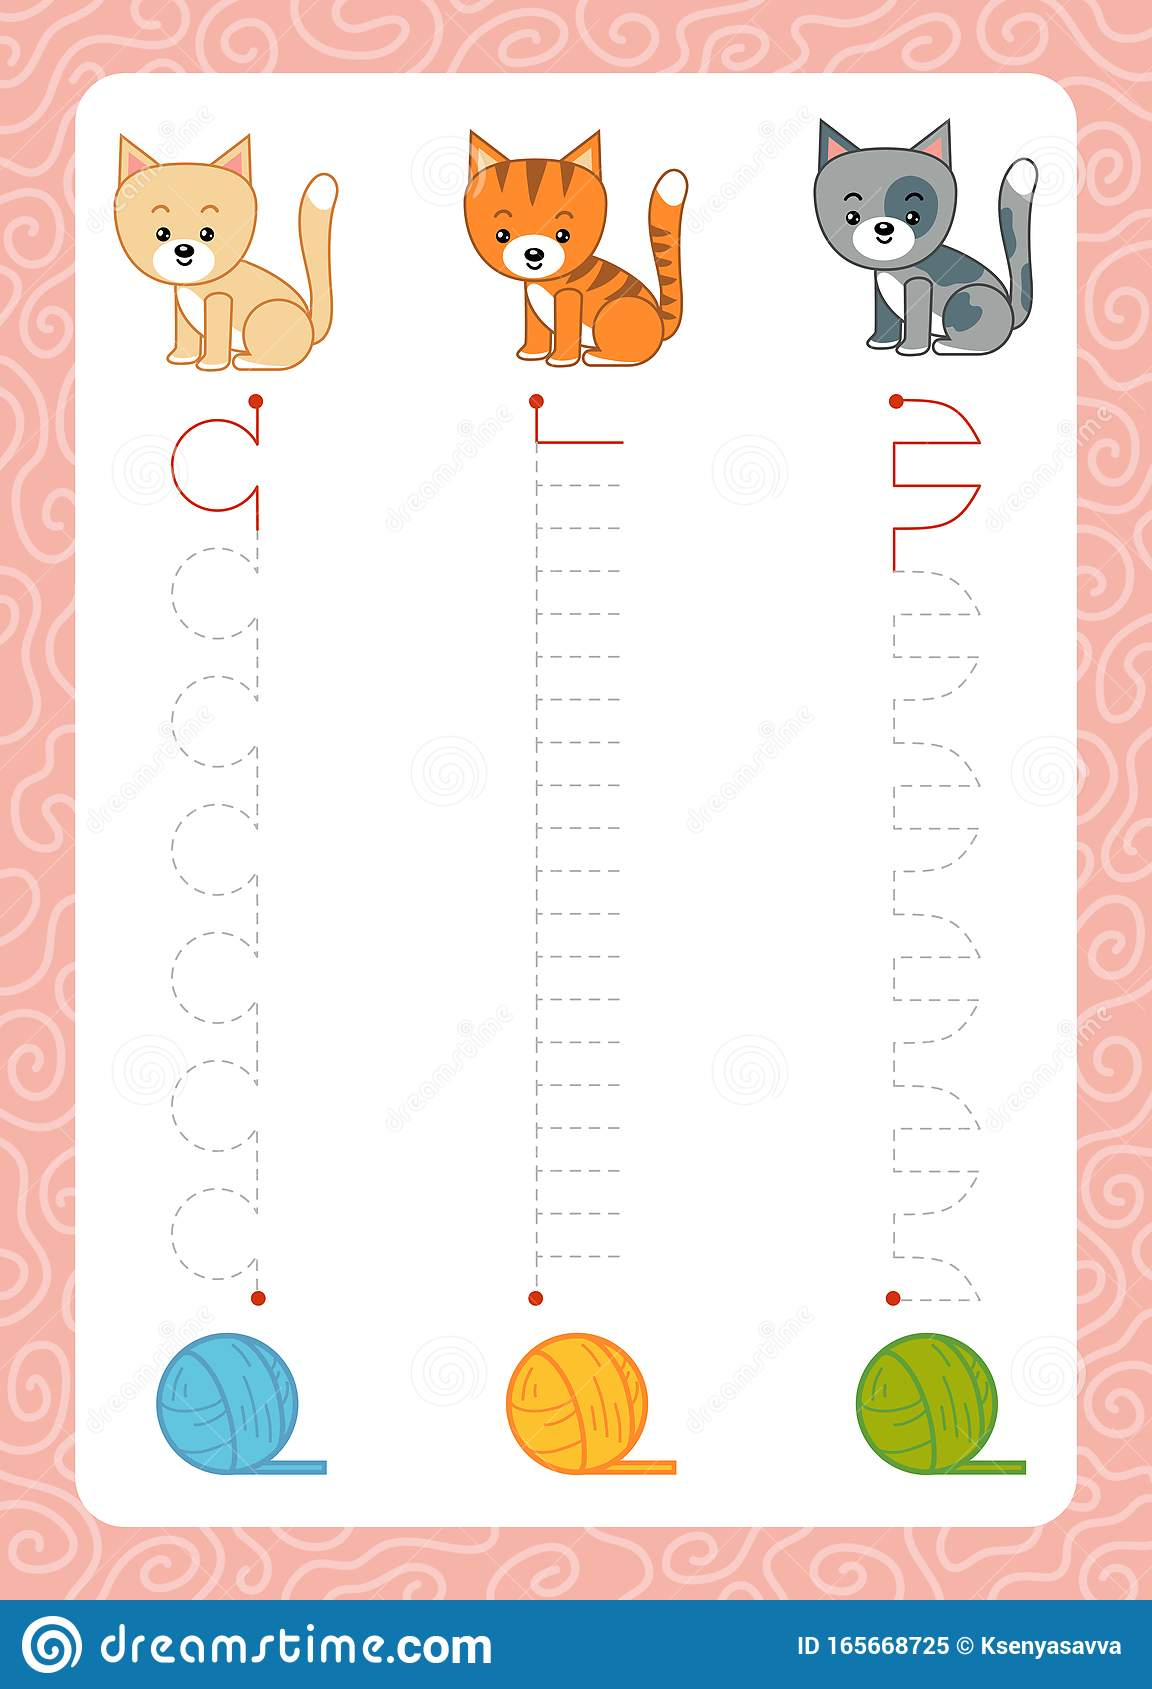 Trace The Dotted Lines From Cats To Balls Of Yarn Connect